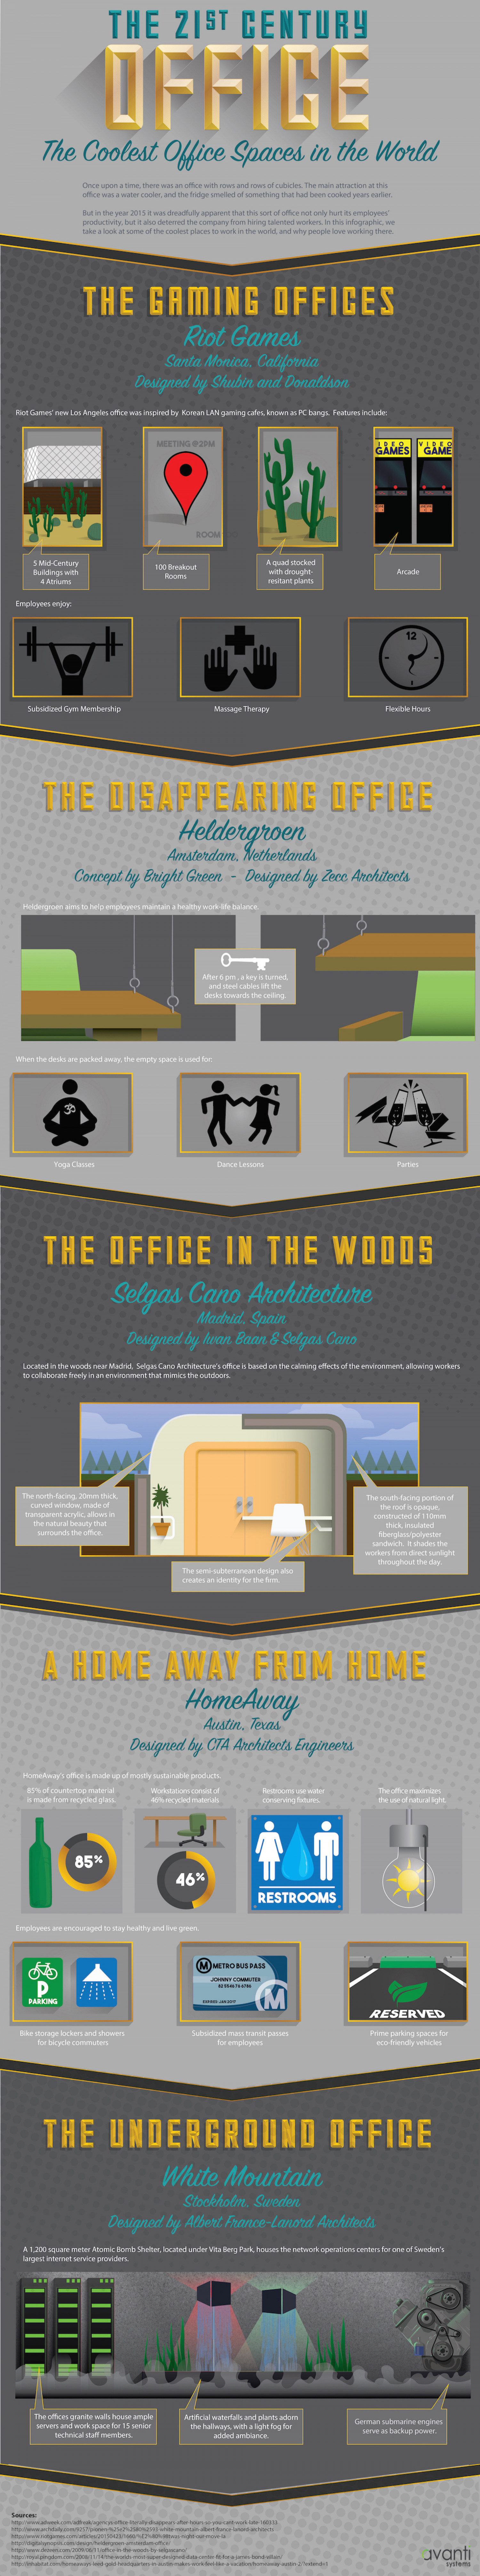 The 21st Century Office - The Coolest Office Spaces In The World Infographic